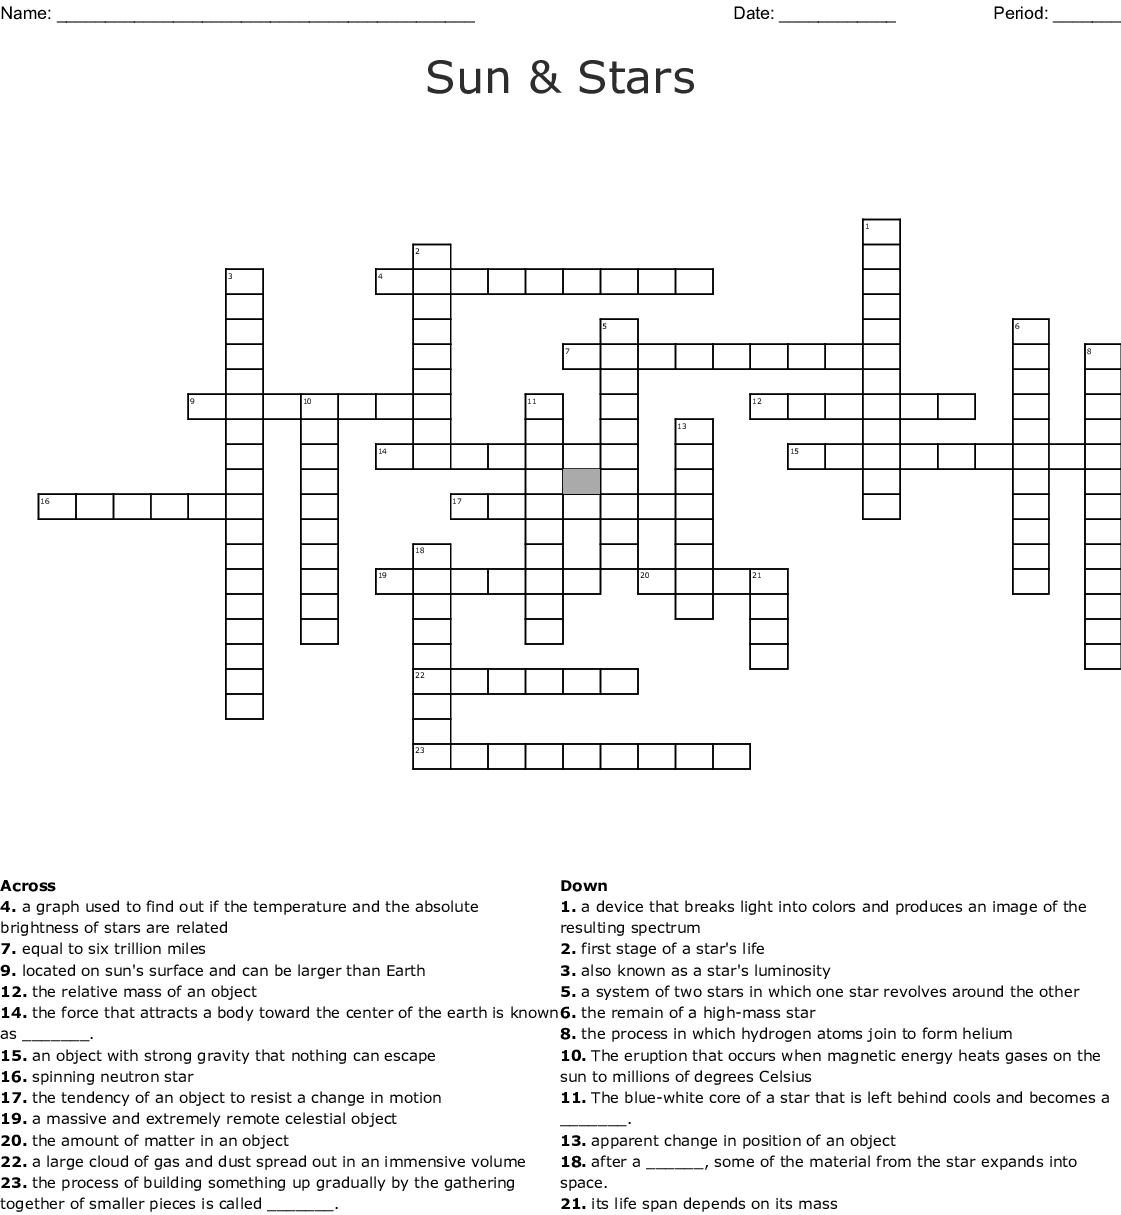 Sun & Stars Crossword - Wordmint - Sun Crossword Printable Version